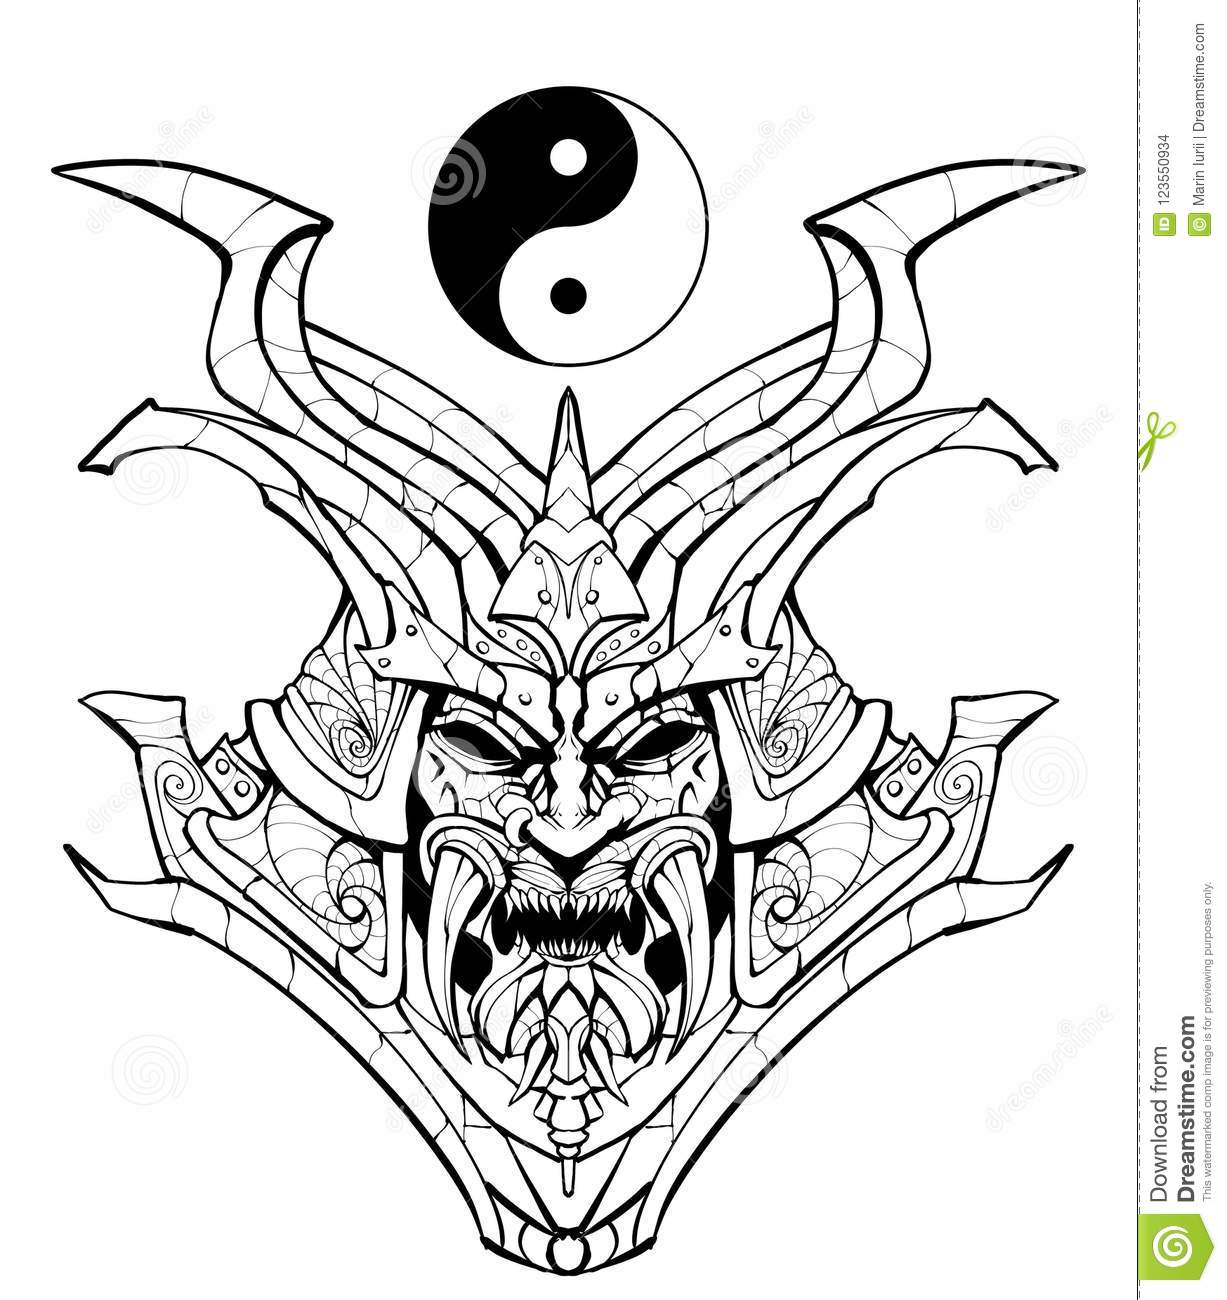 Coloring Page Sinister Samurai Mask Stock Illustration